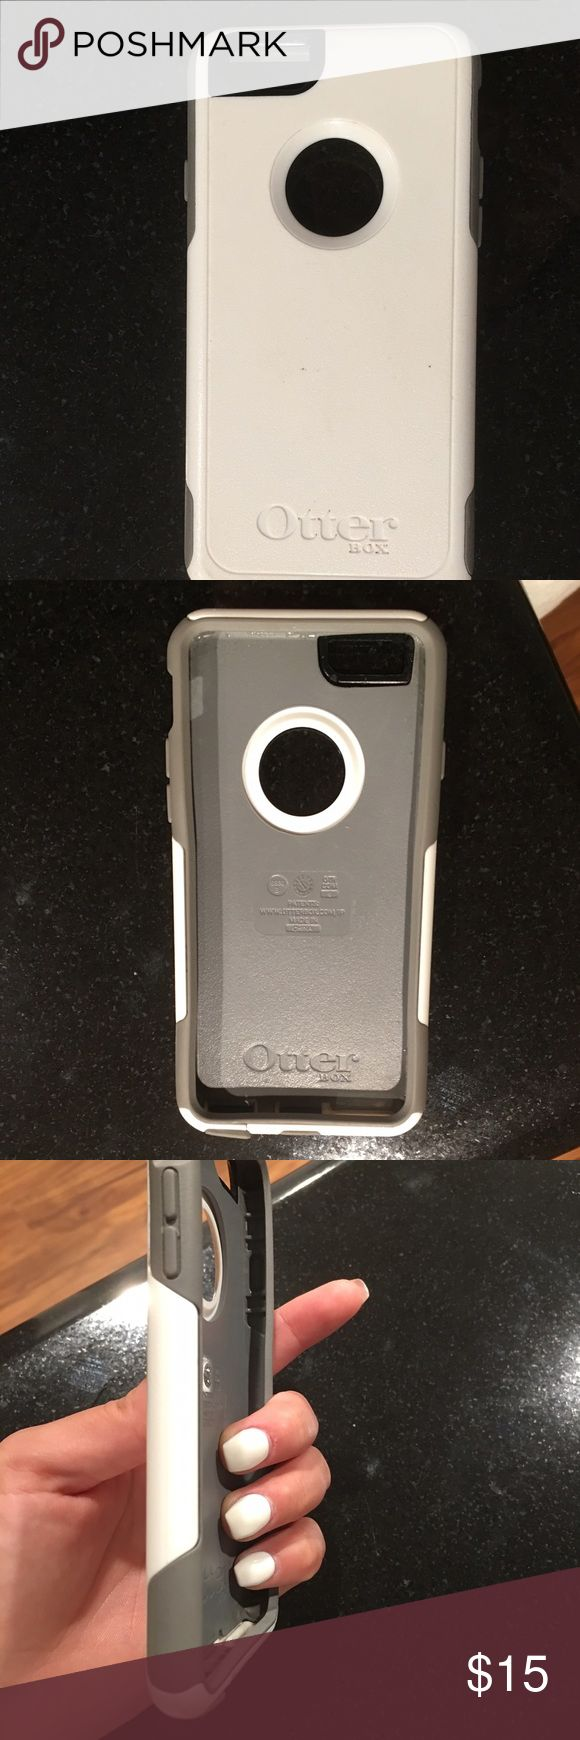 Otter box iPhone 6/6s phone case Lightly used otter box for the iPhone 6/6s from the commuter series of Otterbox. Two layer protective phone case in good condition, slight tear at bottom of case OtterBox Other